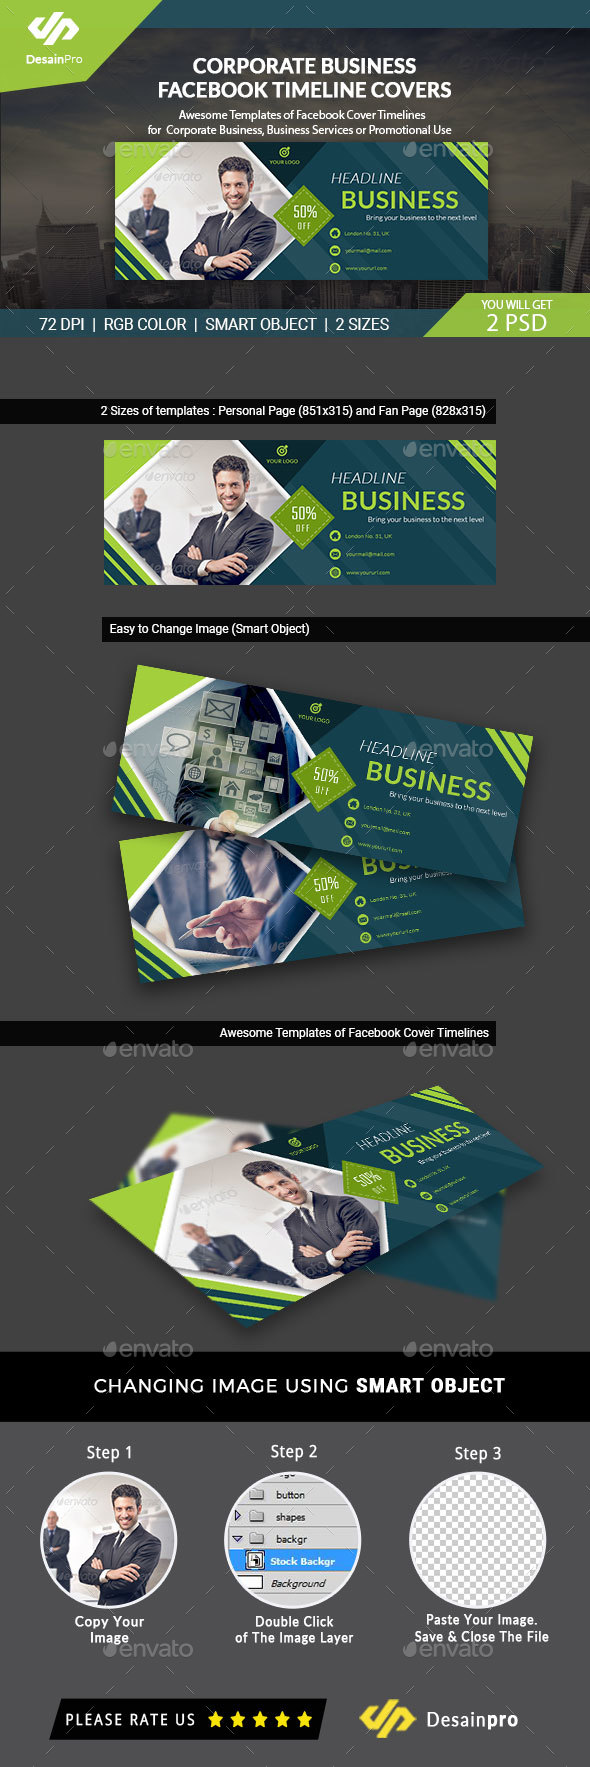 Business FB Cover Templates - AR - Facebook Timeline Covers Social Media